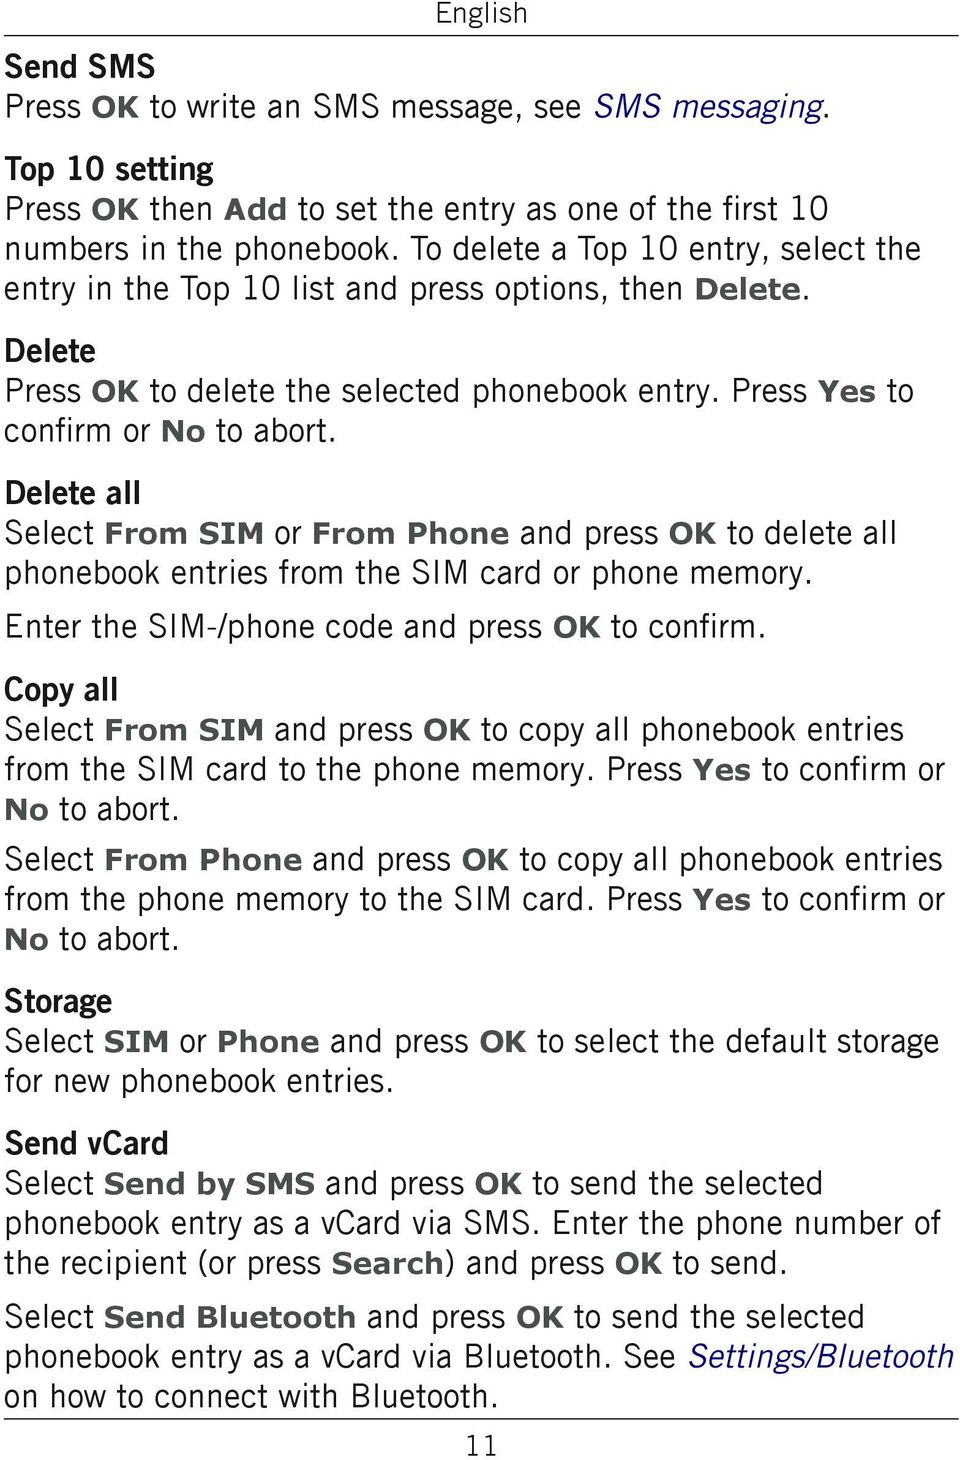 Delete all Select From SIM or From Phone and press OK to delete all phonebook entries from the SIM card or phone memory. Enter the SIM-/phone code and press OK to confirm.